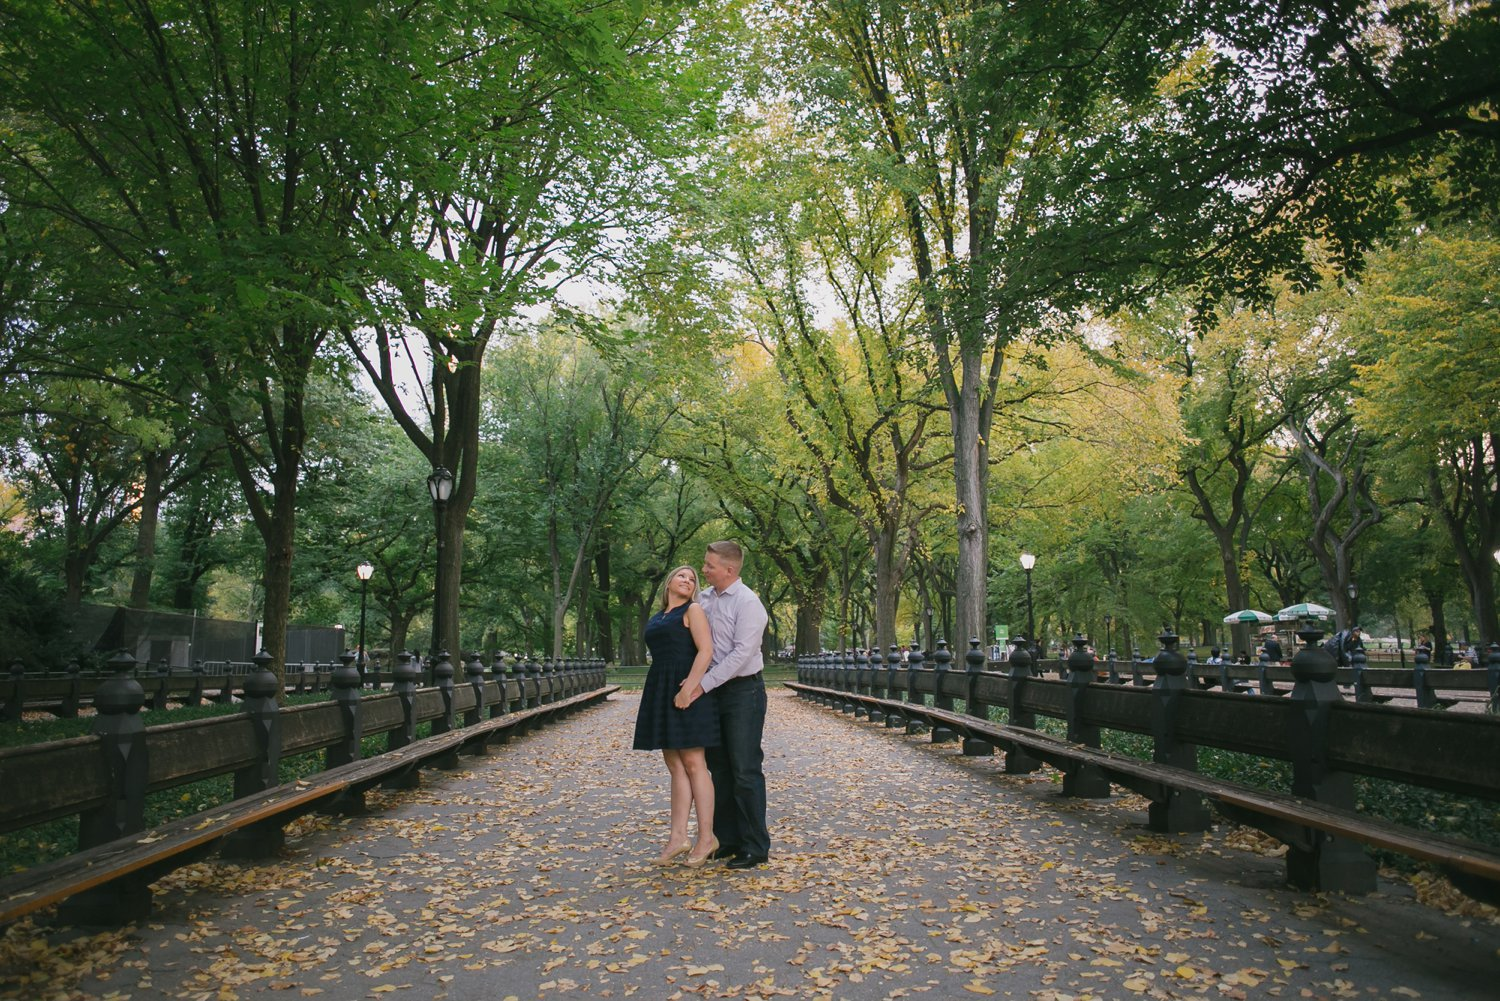 82NYC-NJ-ENGAGEMENT-PHOTOGRAPHY-BY-INTOTHESTORY-MOO-JAE.JPG